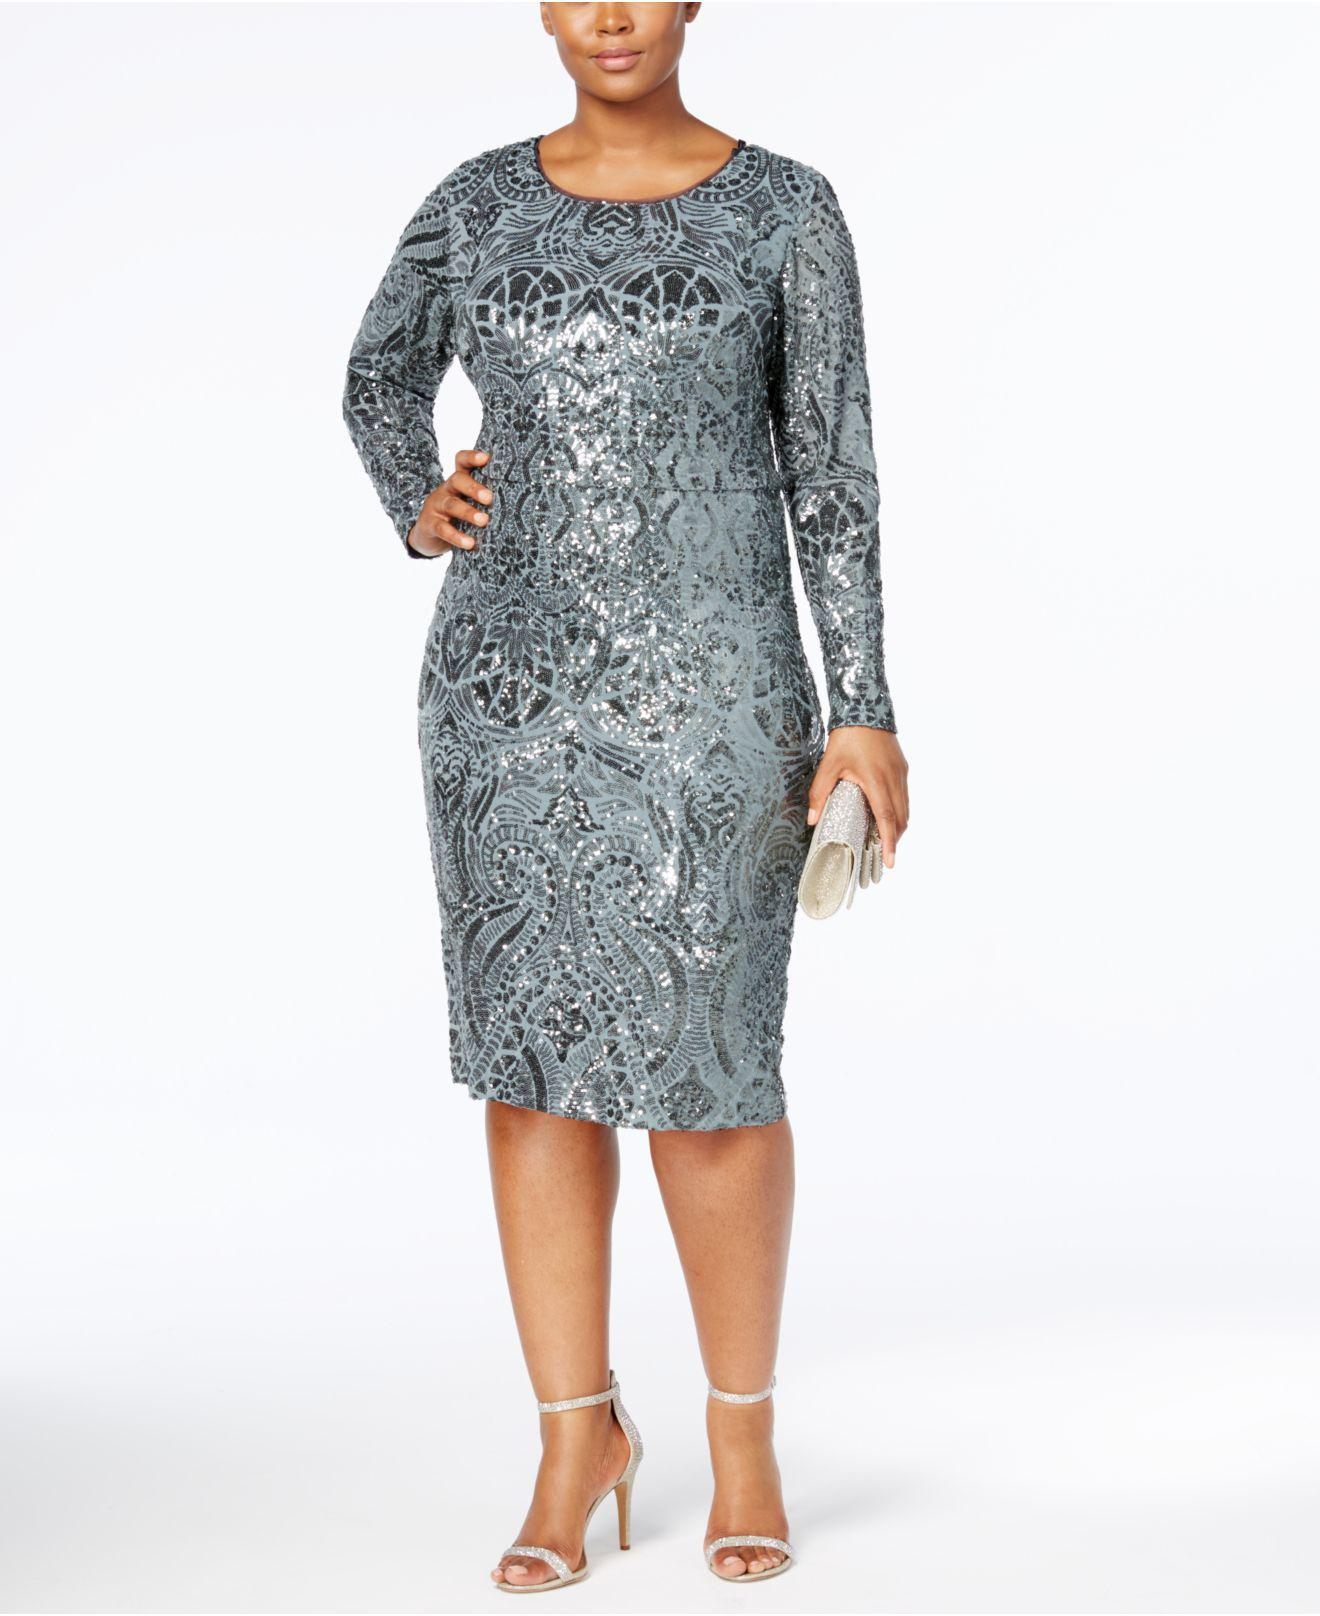 c0da03c30a3 Gallery. Previously sold at  Macy s · Women s Sequin Dresses ...